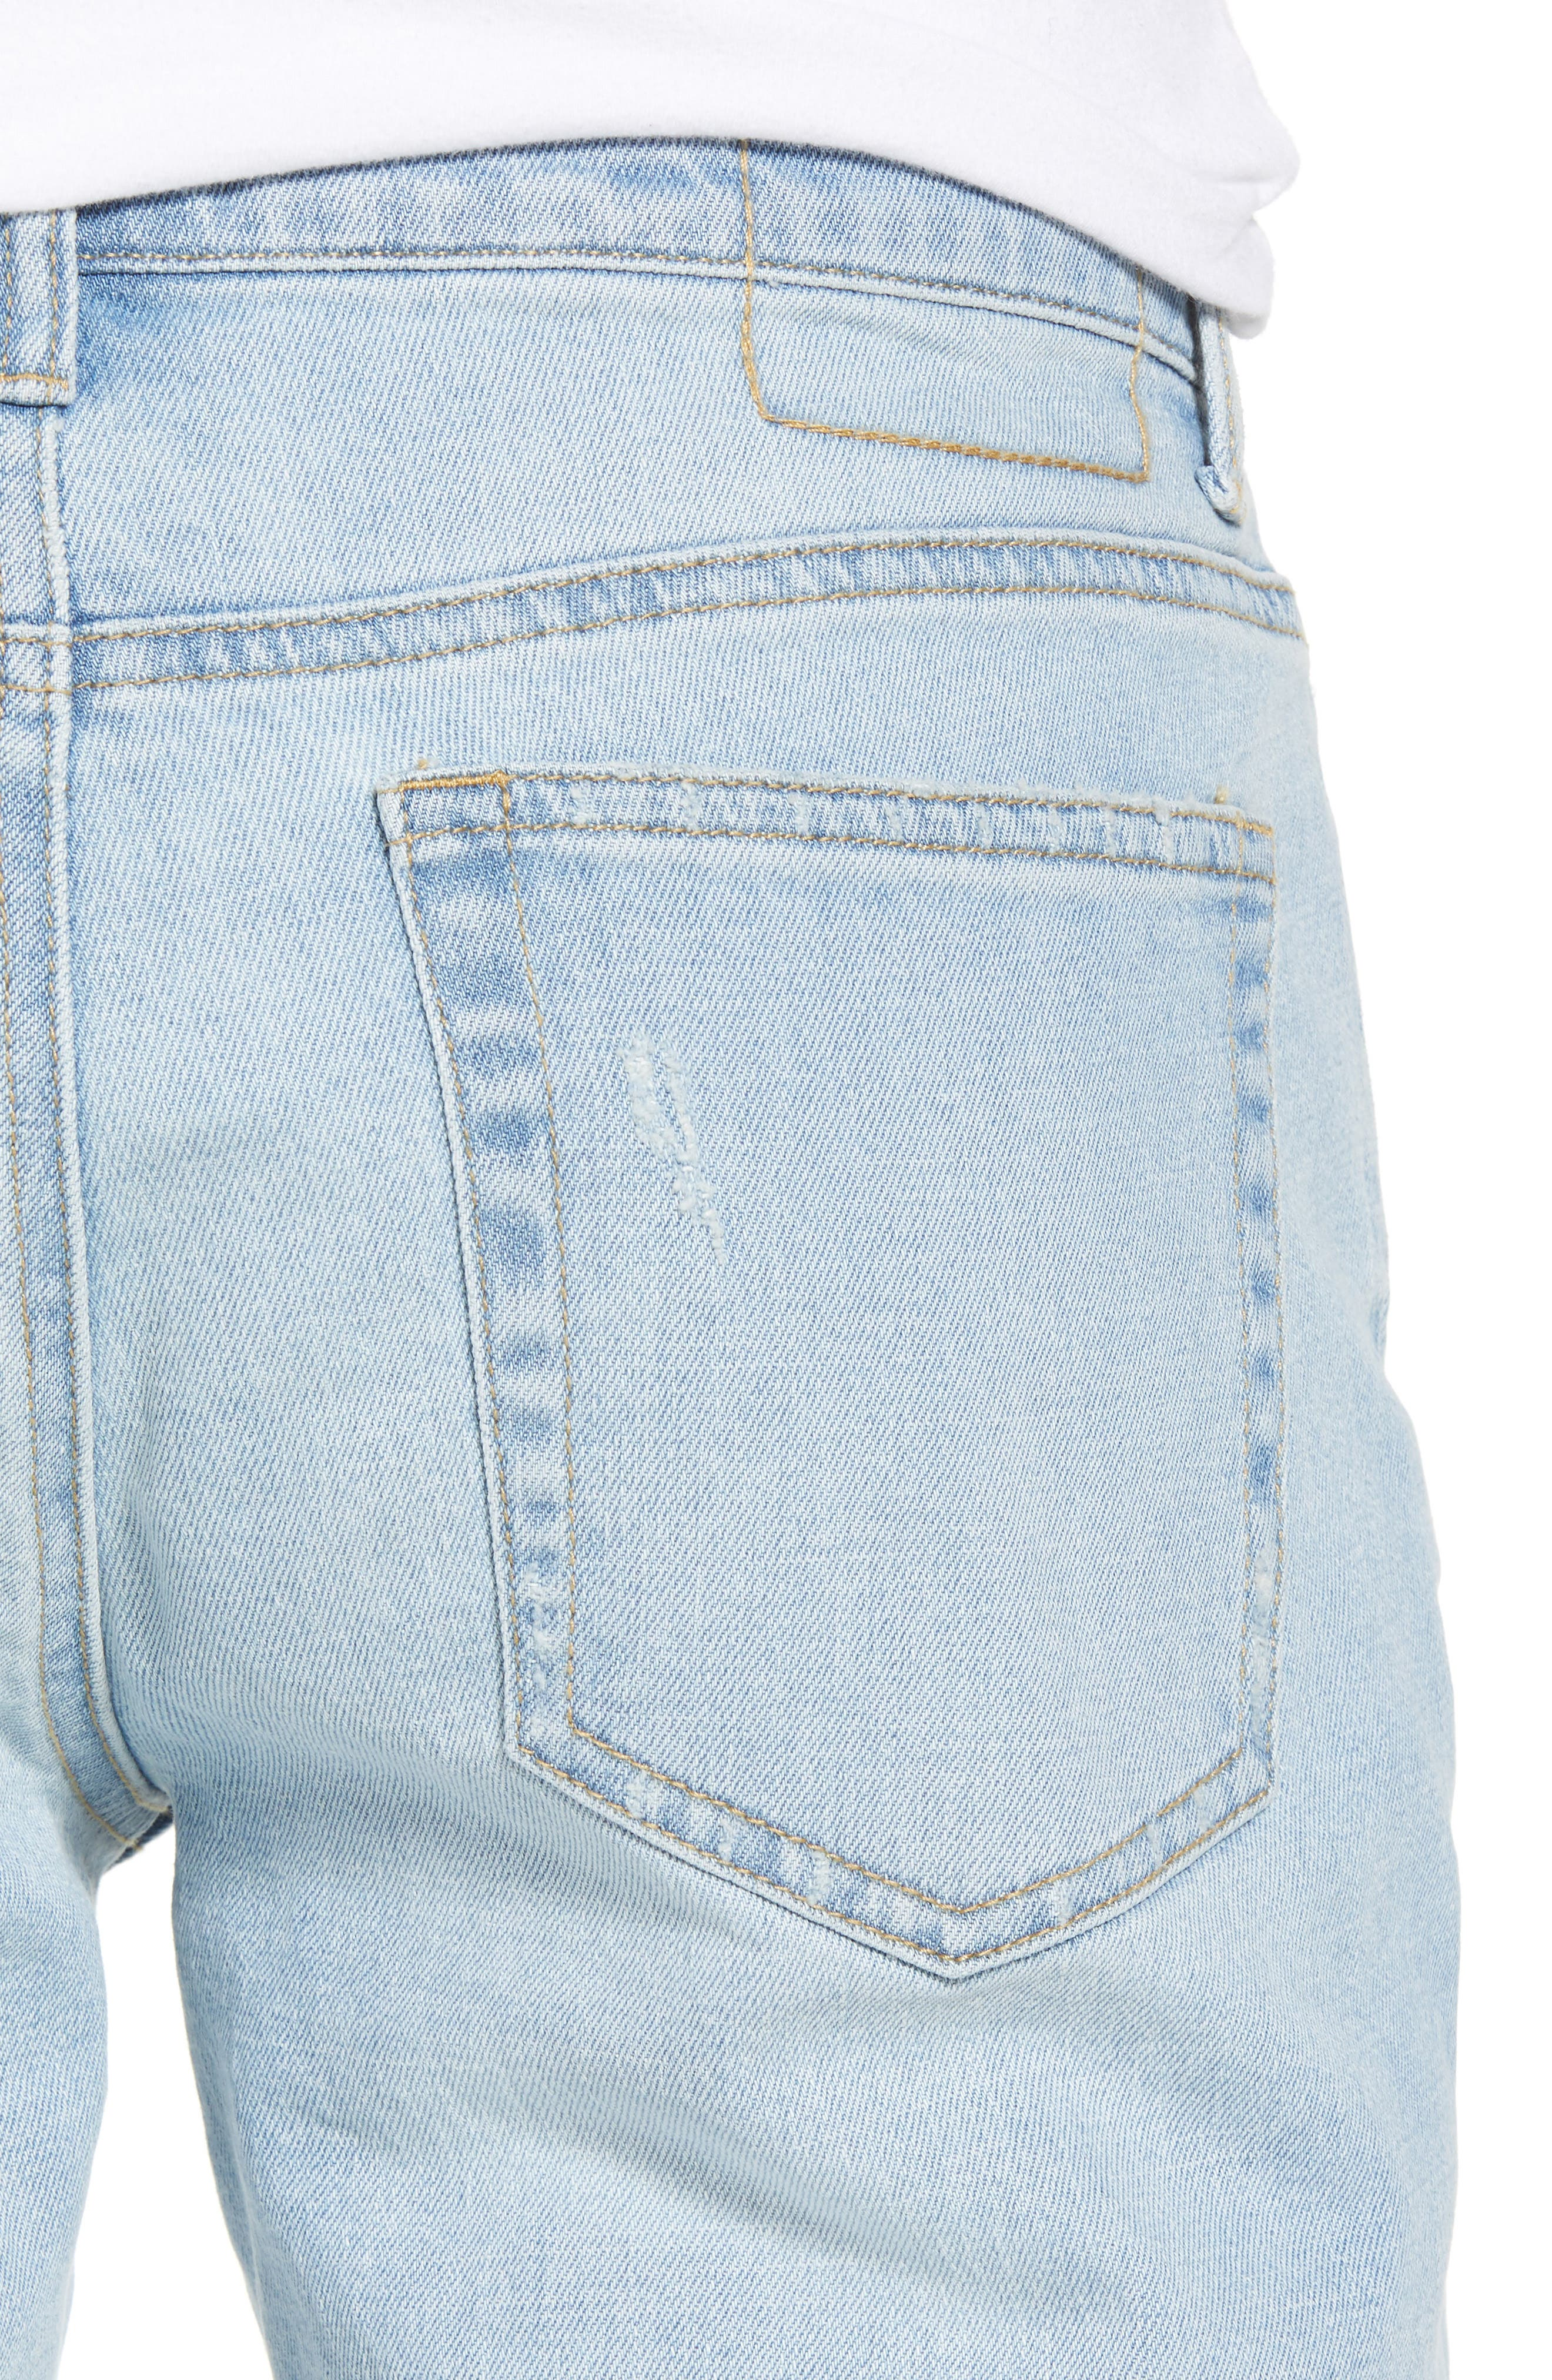 THE RAIL, Ripped Skinny Jeans, Alternate thumbnail 5, color, BLUE CORGAN WASH